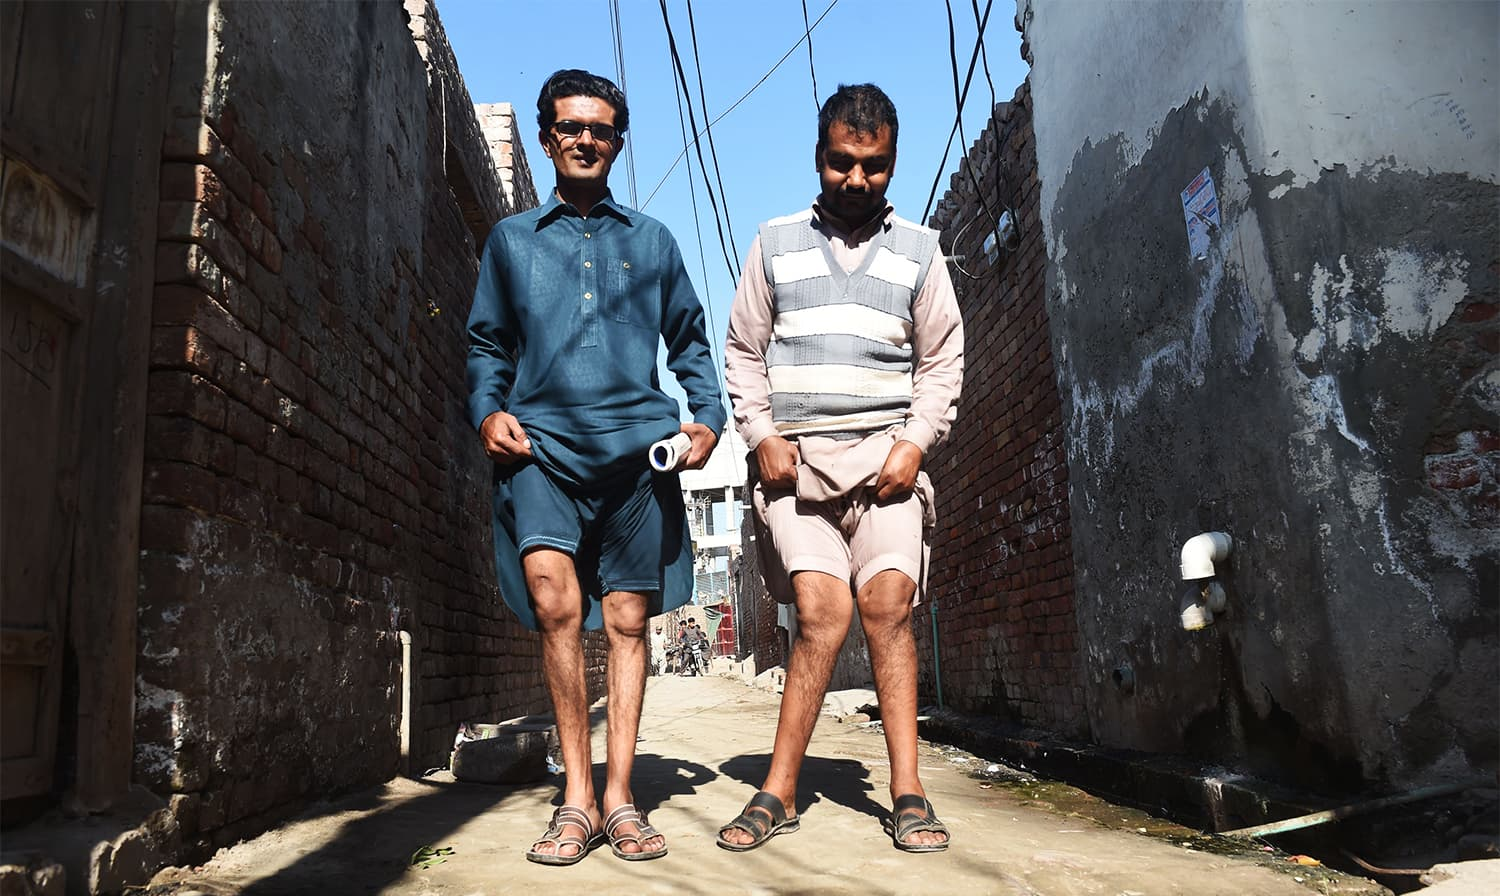 In this picture taken on February 25, 2018, Basharat Ali (L) and Naveed show their deformed lags allegedly caused by environmental factors and polluted groundwater in Kot Assadullah, around 45km from Lahore. ─ AFP